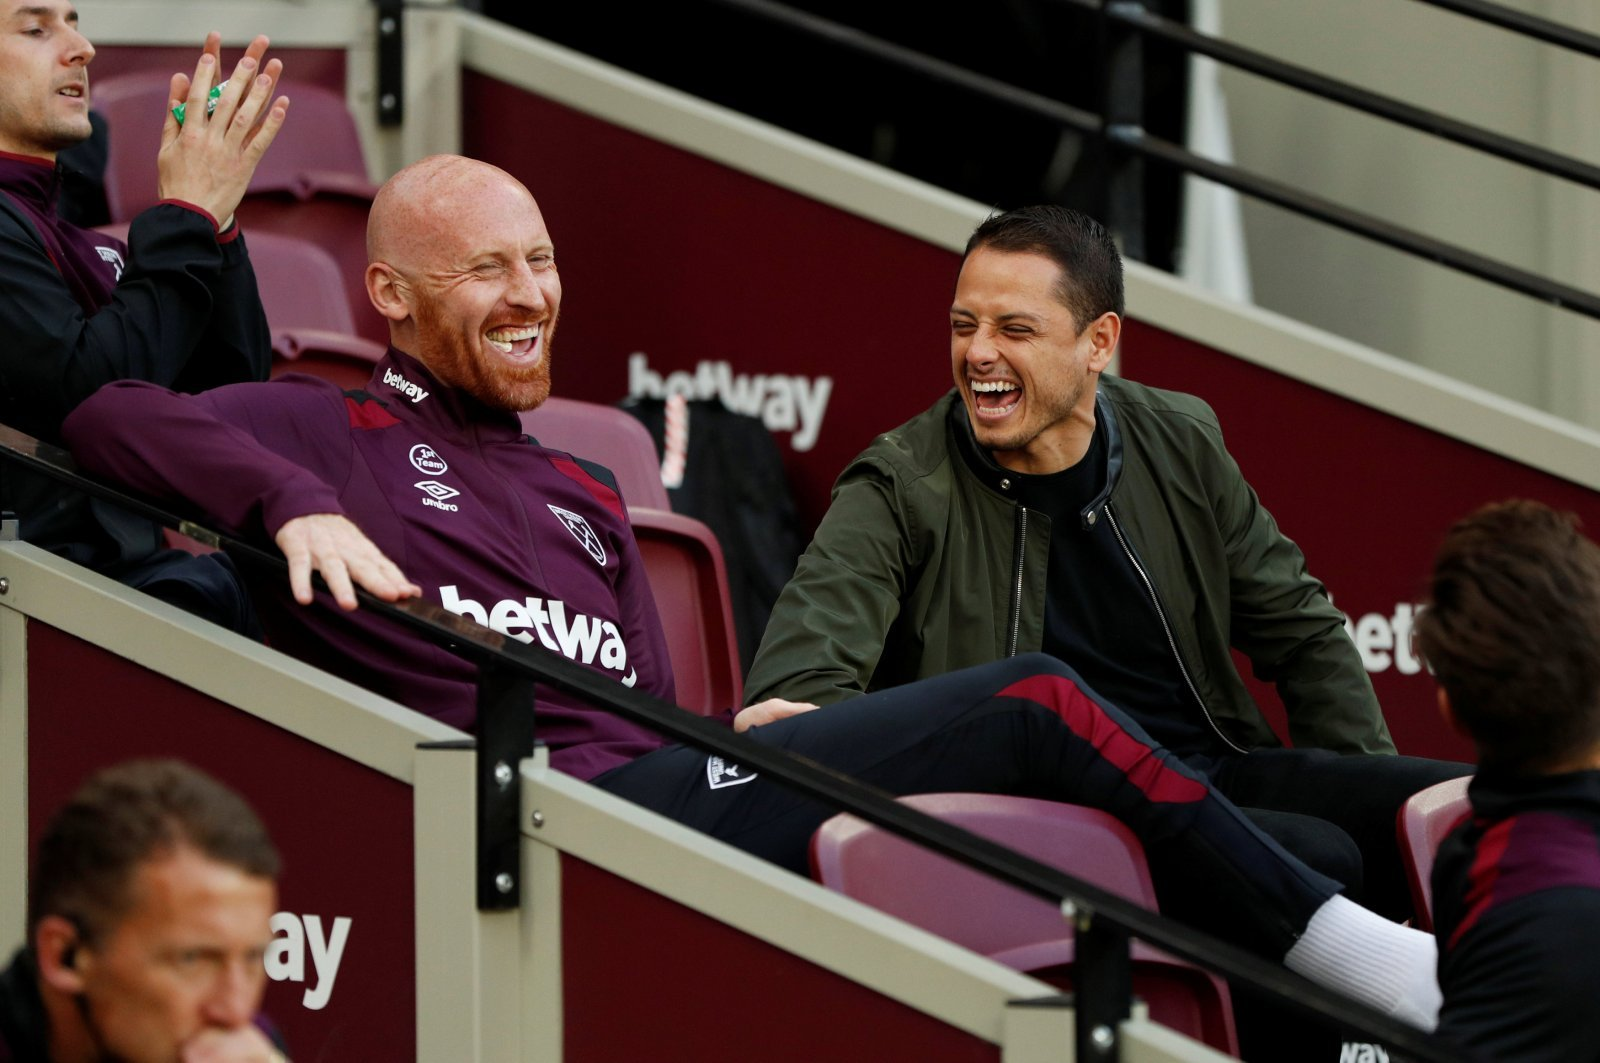 The coast is clear for Leeds United to sign James Collins